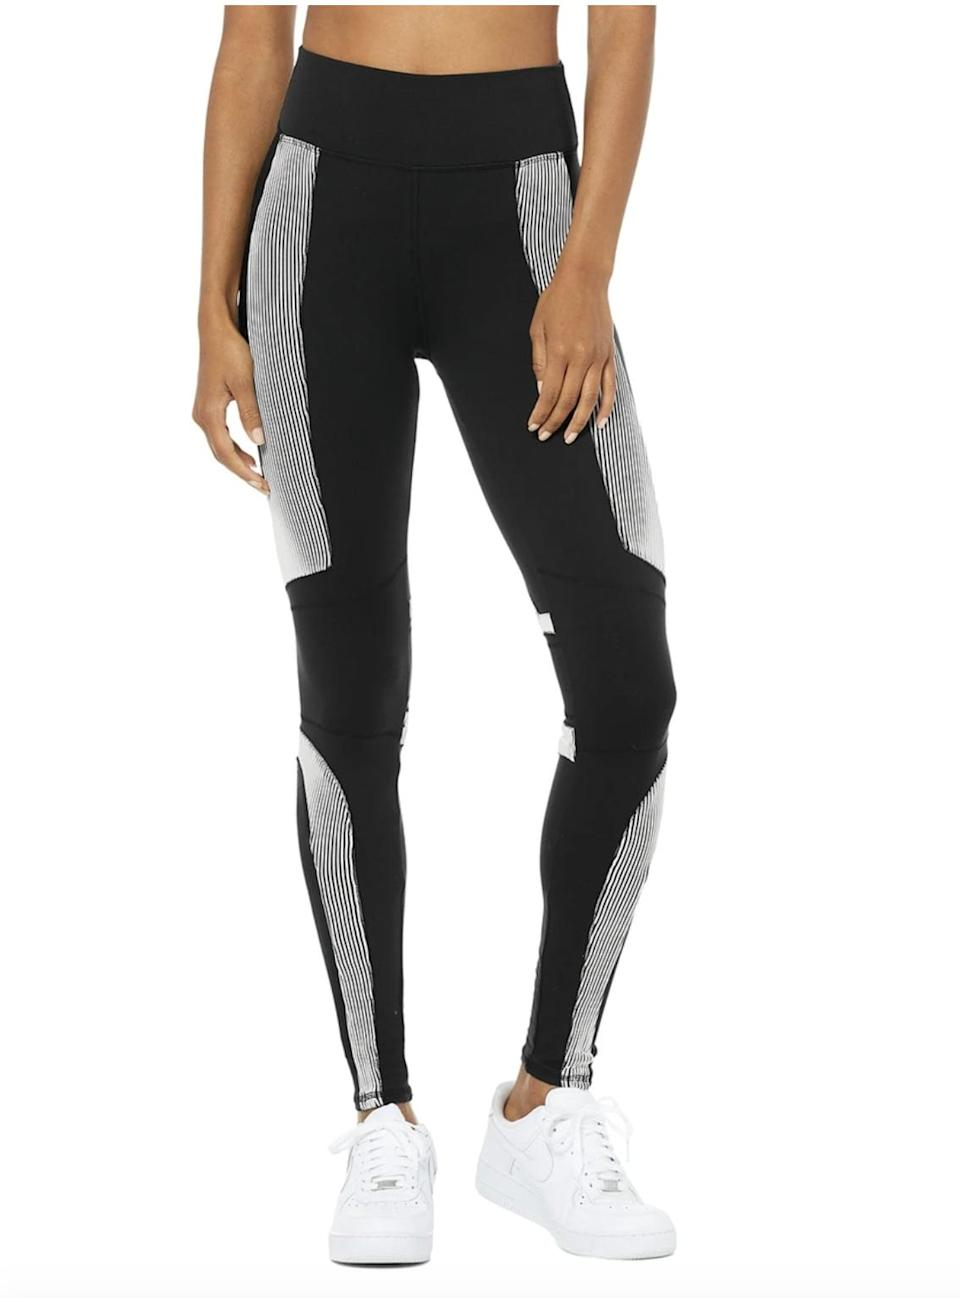 <p>The <span>Alo Yoga High-Waist Electric Leggings</span> ($138) are made with the brand's signature sculpting Airbrush fabric and extra stretch built in, so they move with your body. The stylish ribbed design will look great for your workout <i>and </i>for running errands before or after.</p>